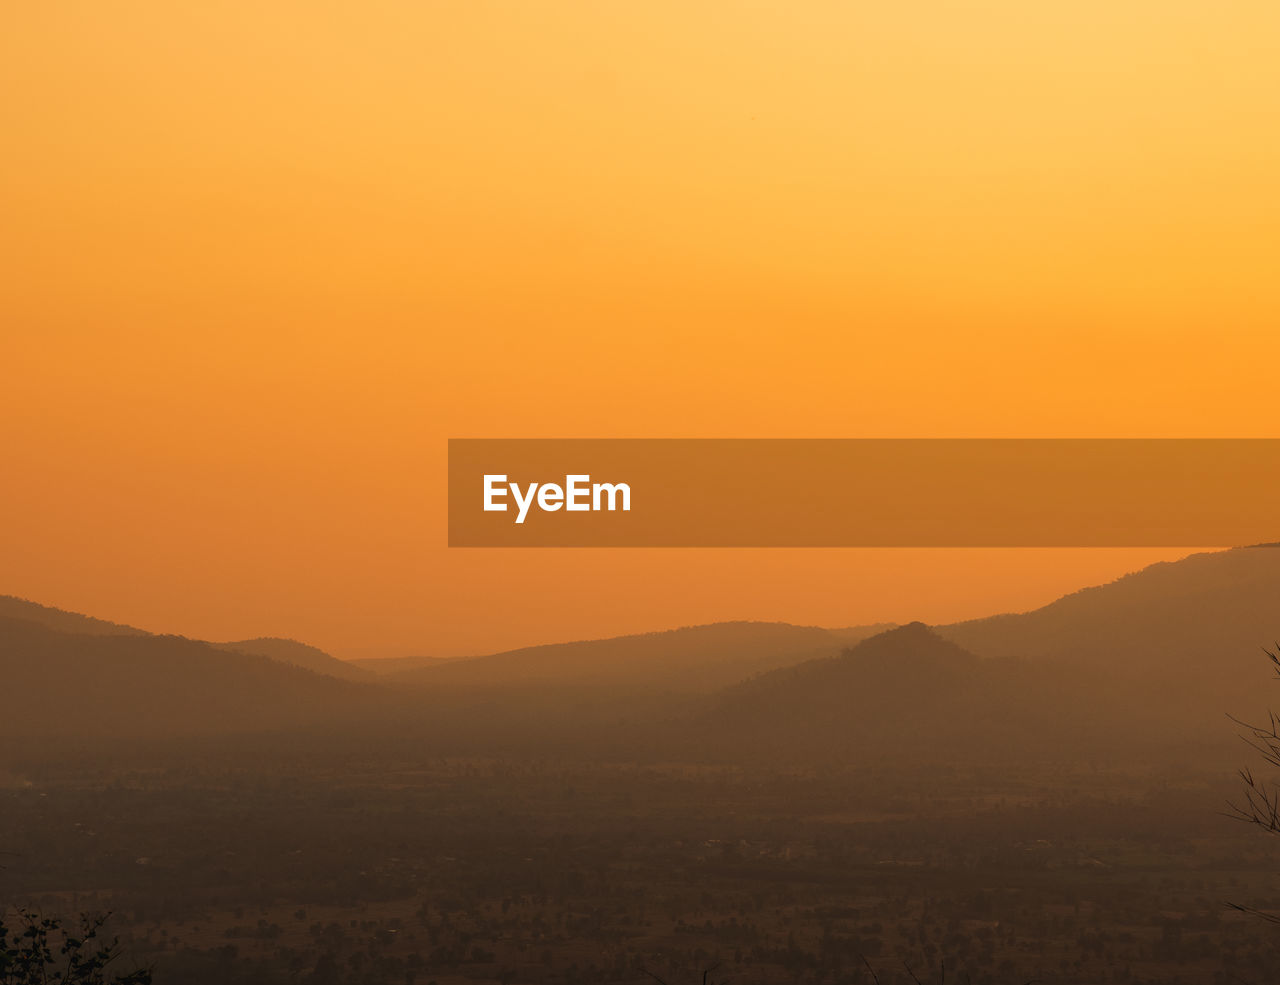 beauty in nature, sky, scenics - nature, sunset, tranquil scene, tranquility, environment, landscape, mountain, copy space, orange color, no people, nature, idyllic, non-urban scene, silhouette, mountain range, remote, clear sky, outdoors, hazy